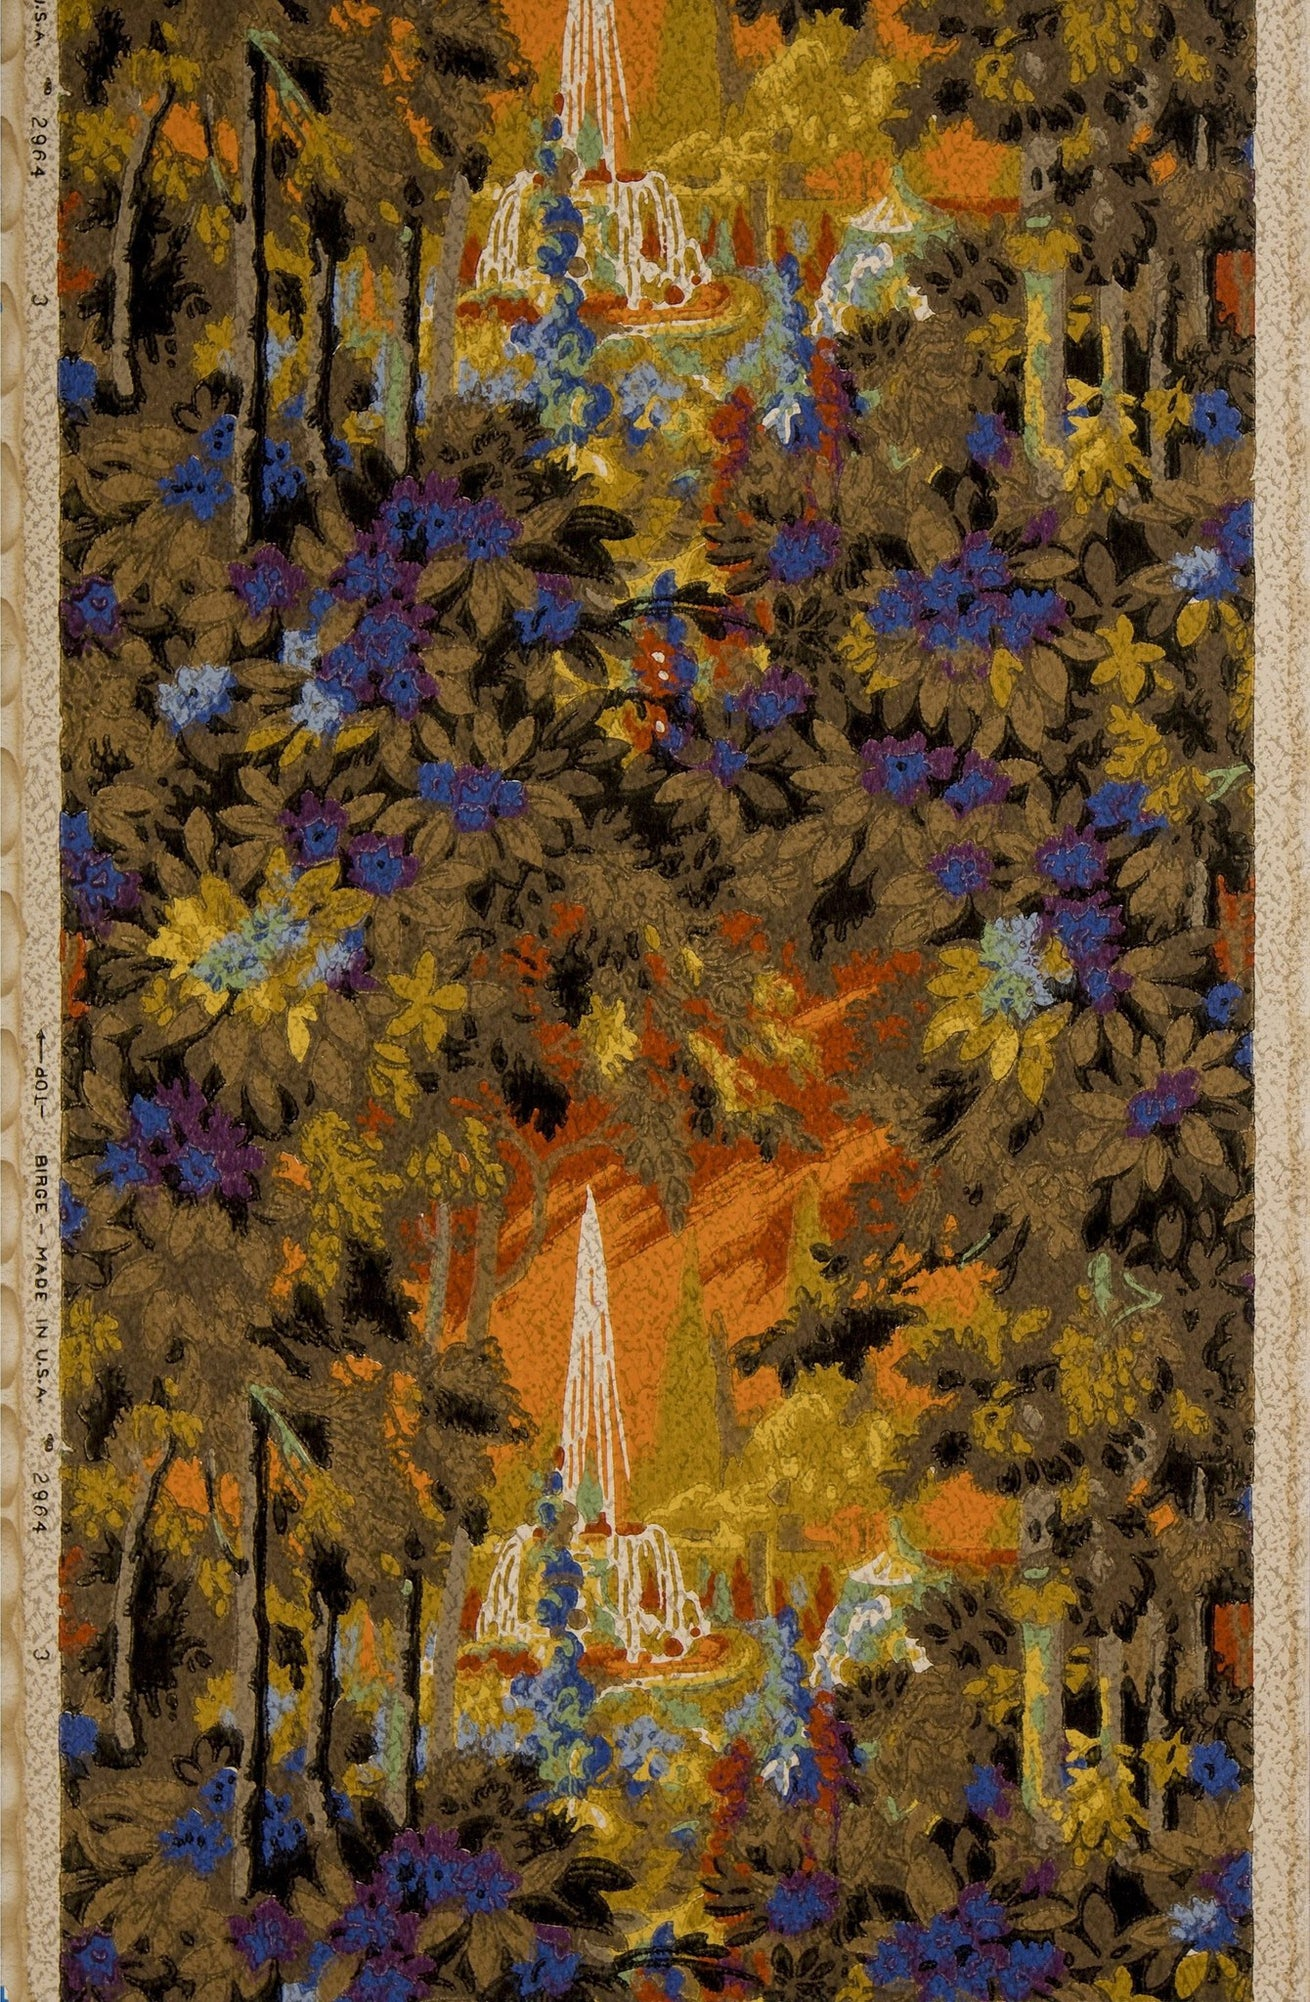 Fiery Fountain View Through Dense Foliage - Antique Wallpaper Remnant